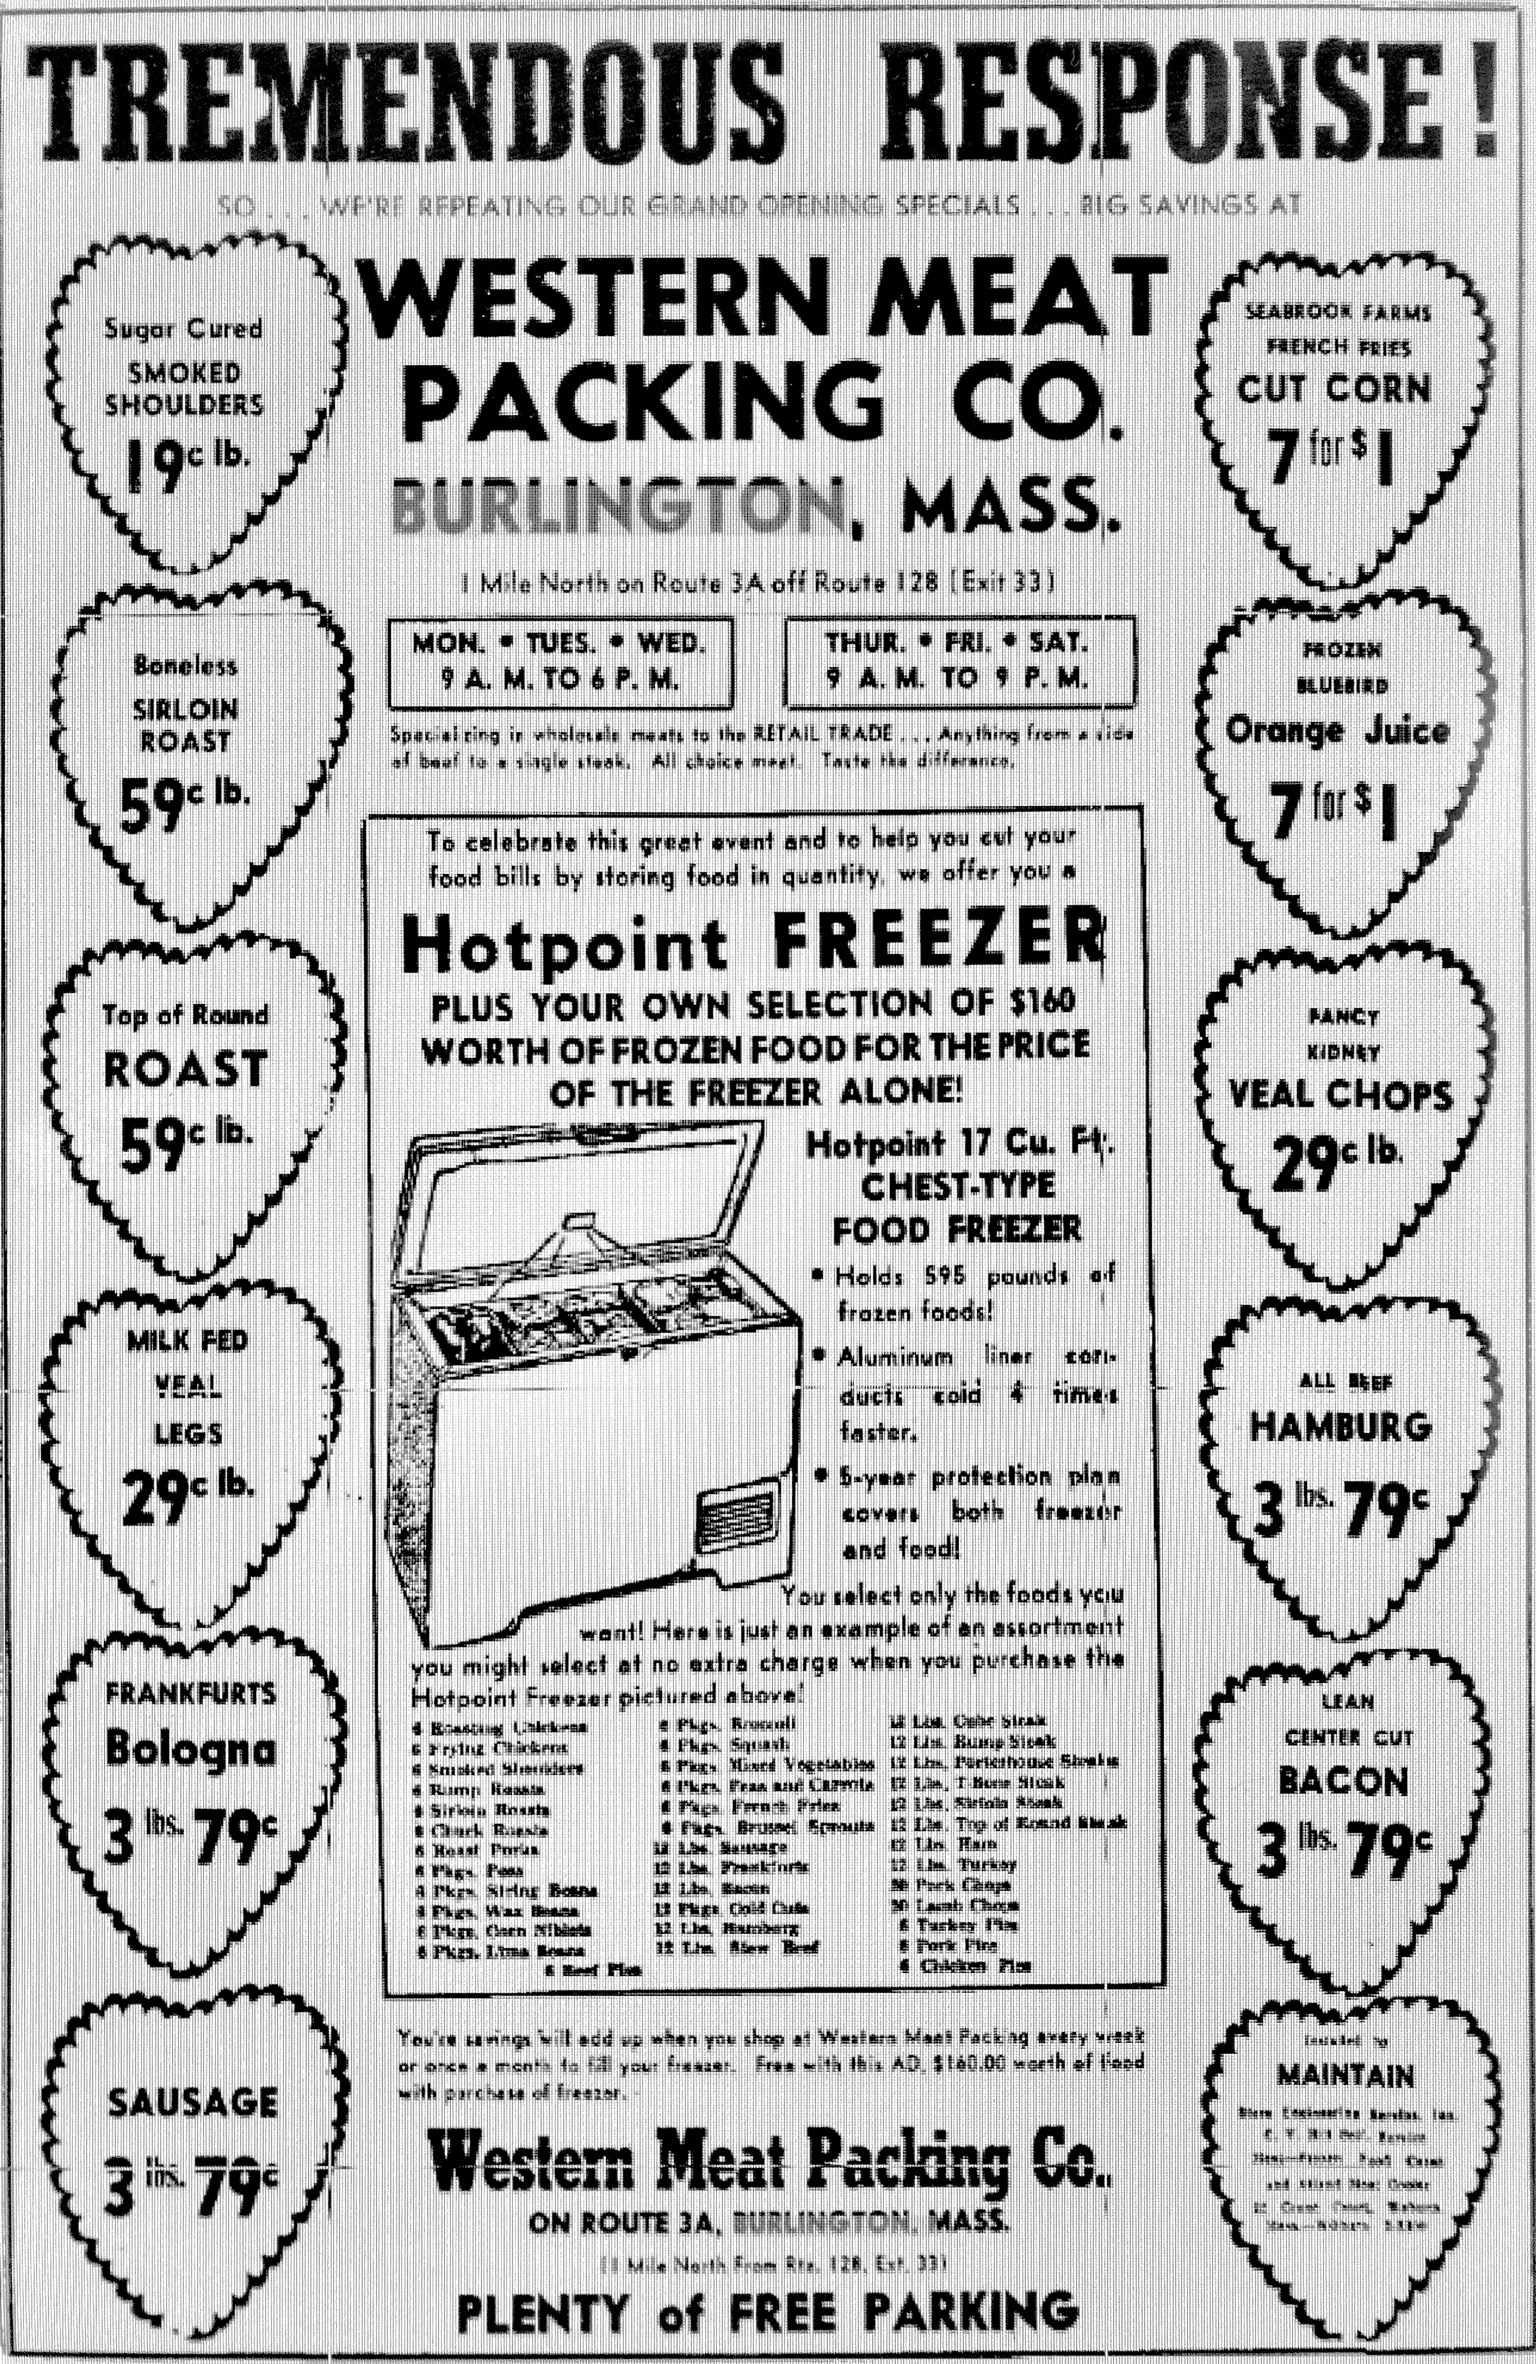 Western Meat Packing Co., 1956 ad Burlington MA